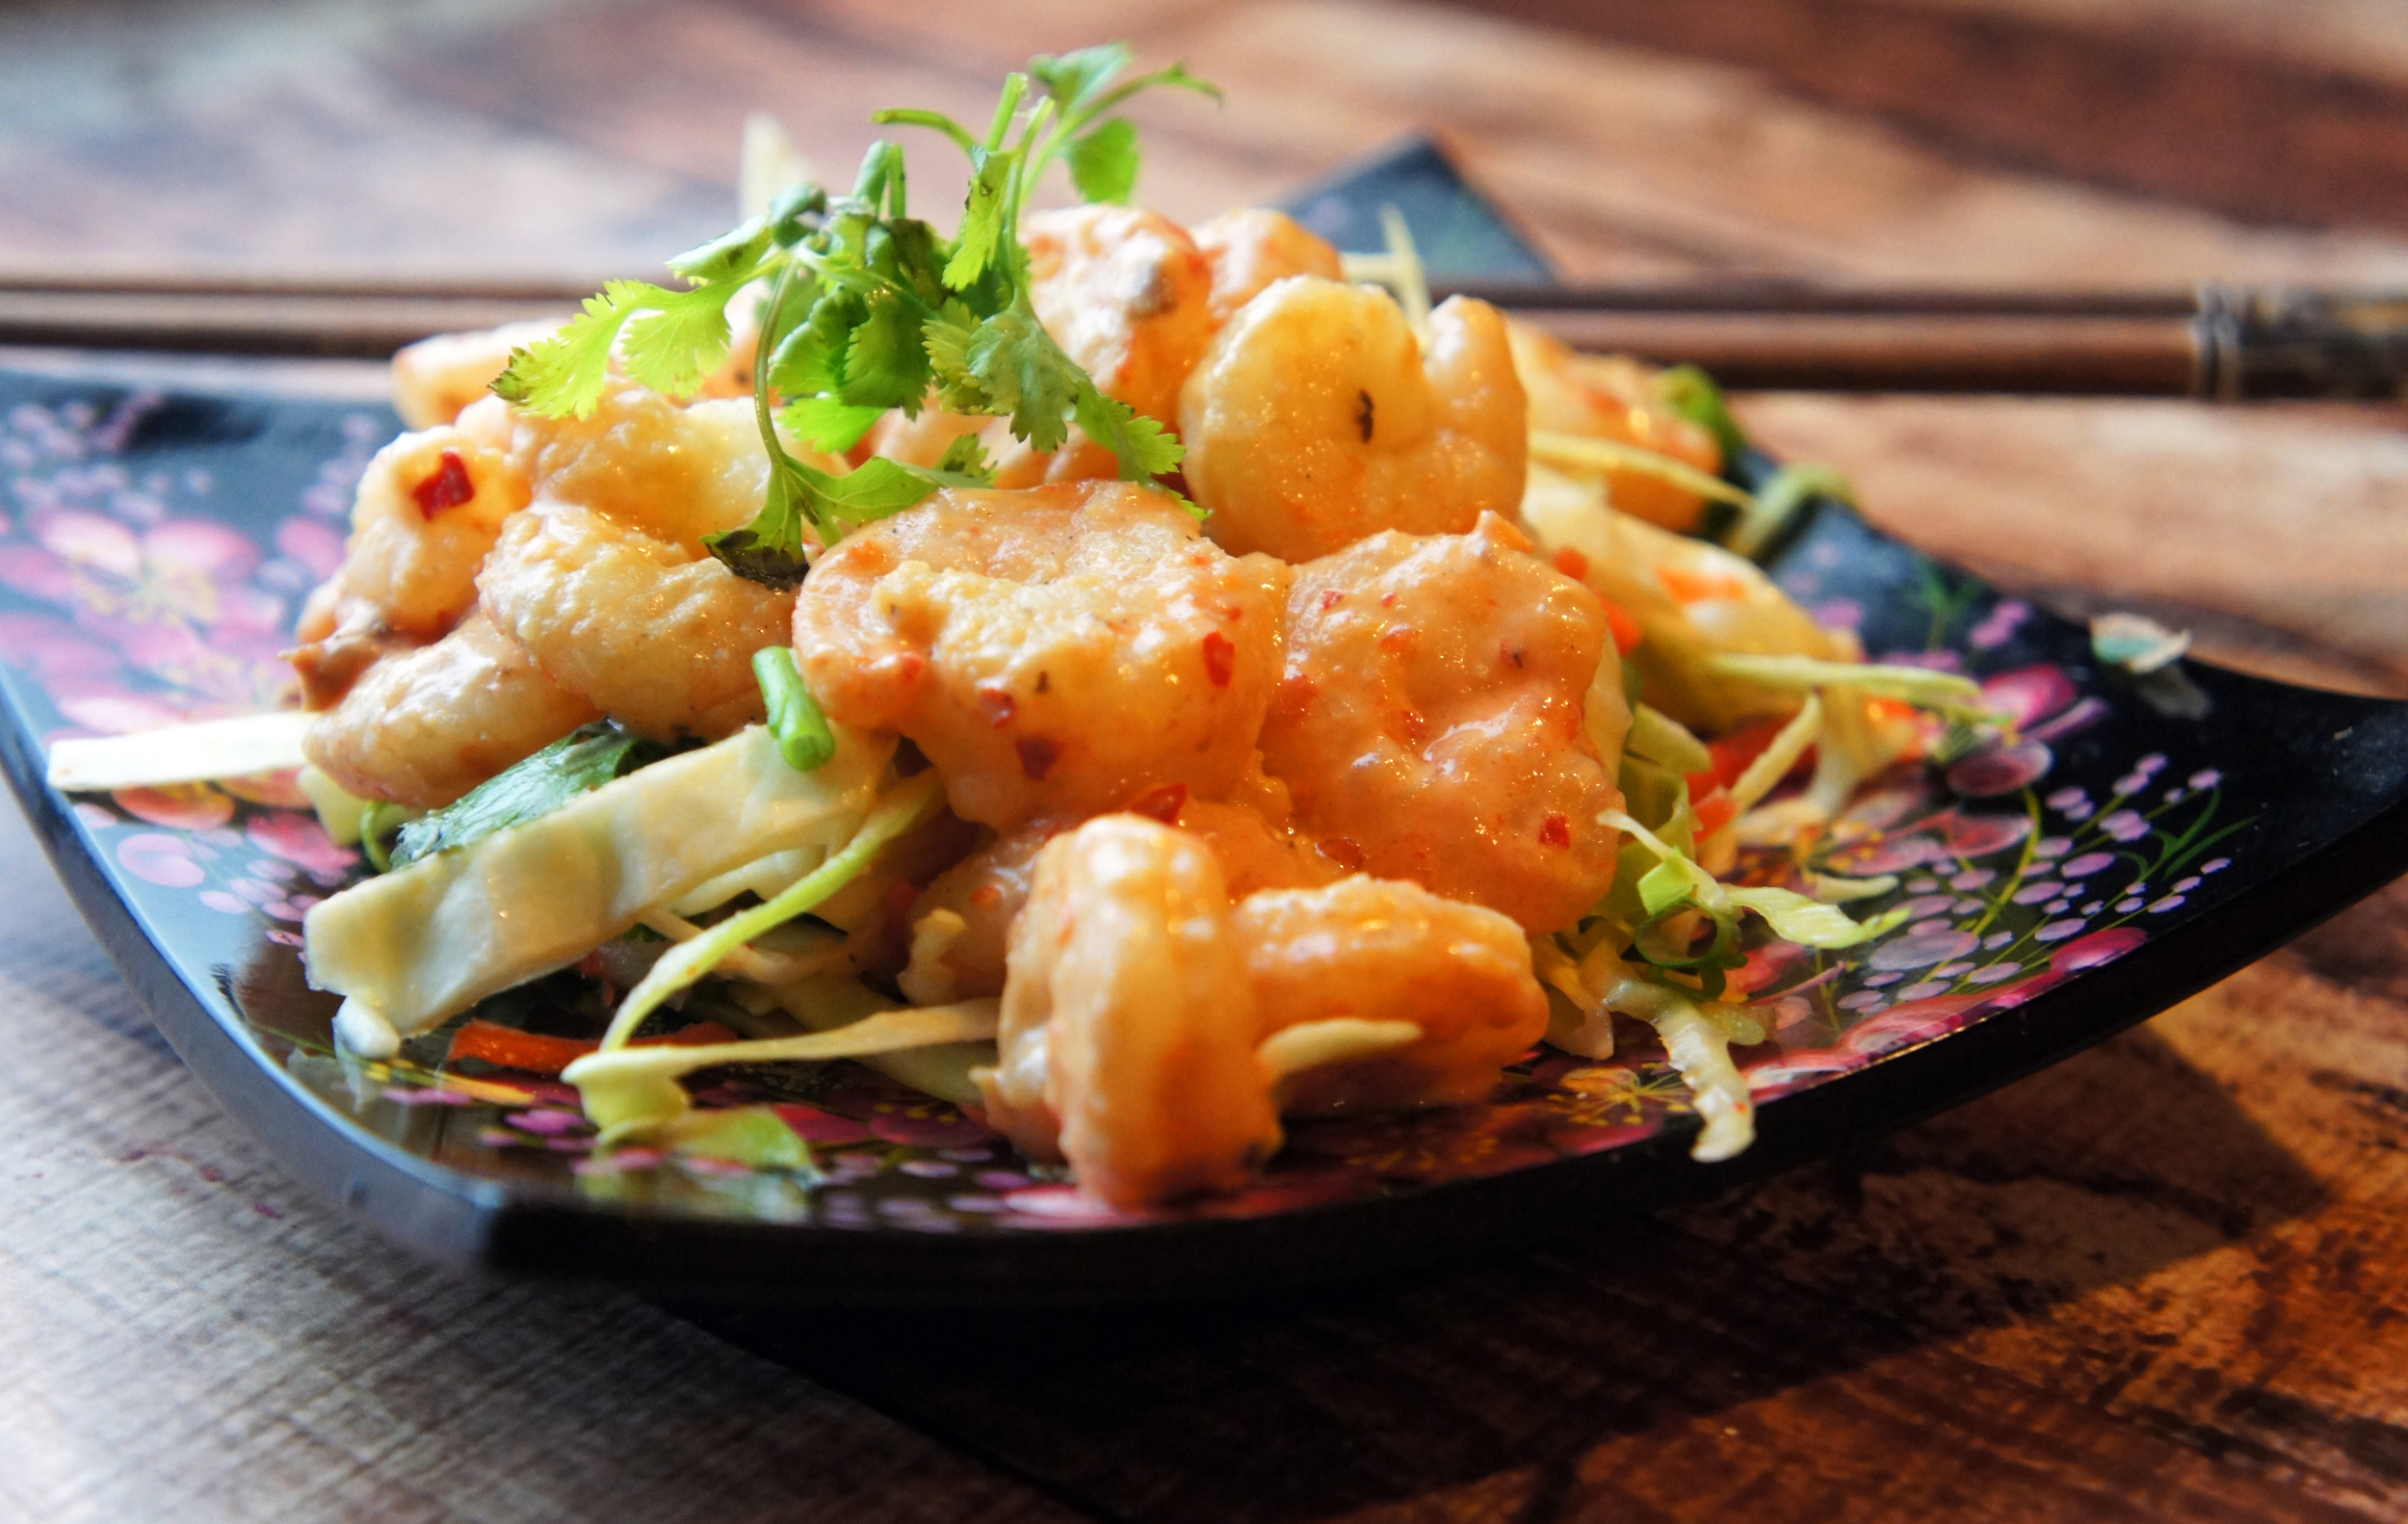 Paleo Bang Bang Shrimp over Chili-Mint Slaw